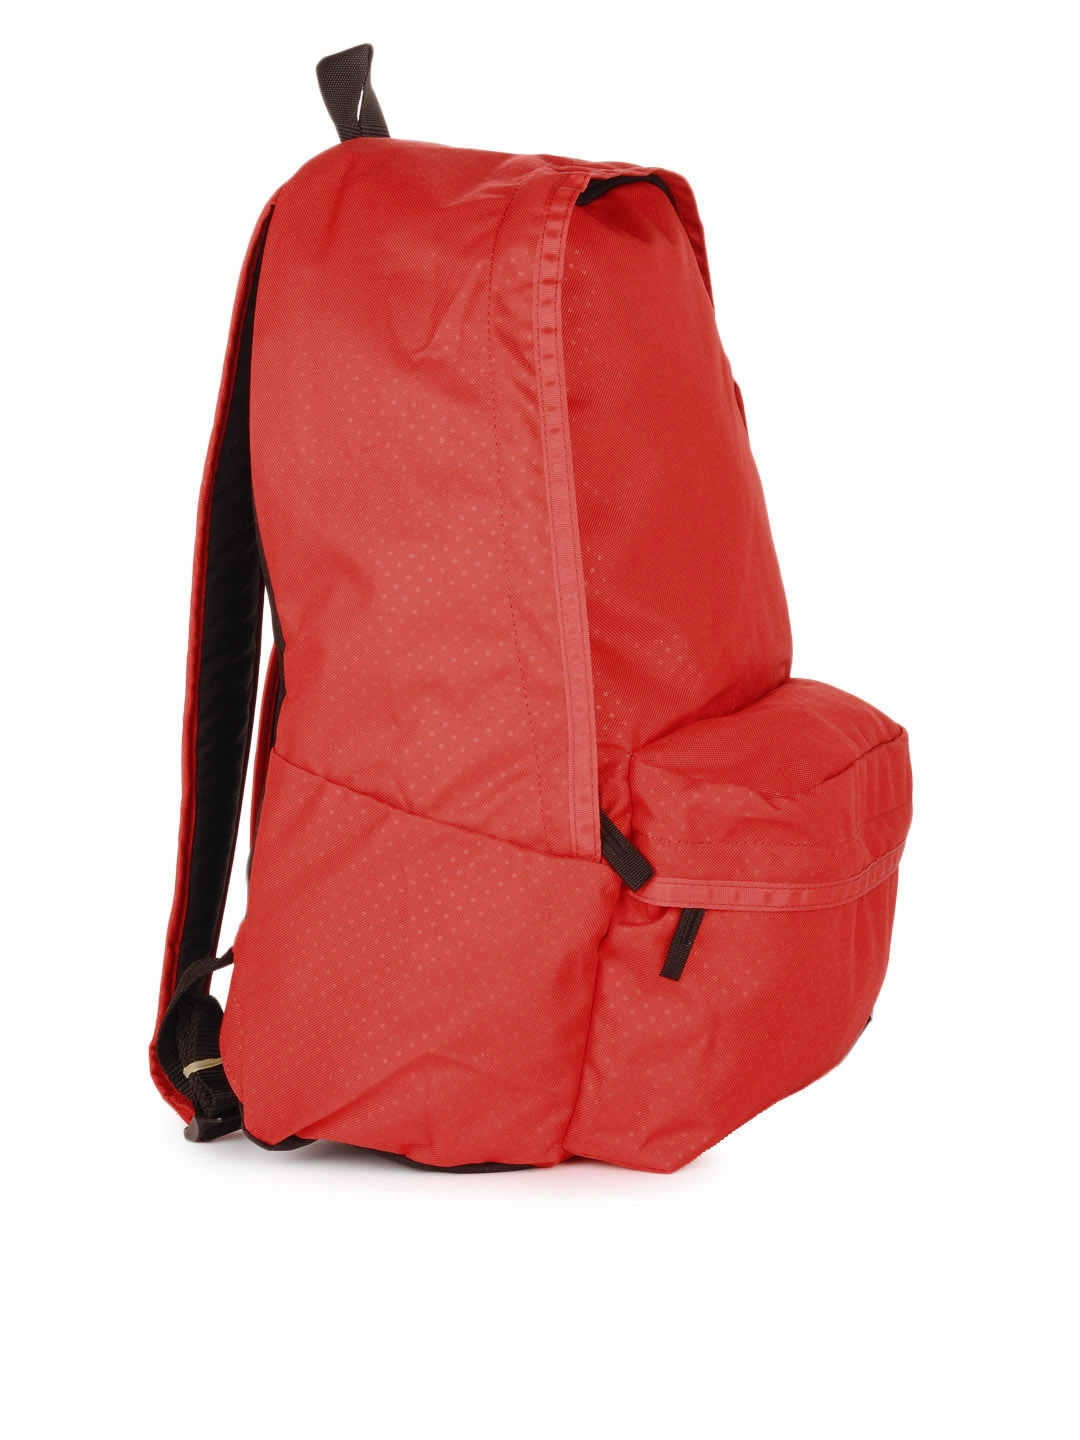 Buy Nike Men Red All Access Halfday Backpack - Backpacks for Unisex ... 3cc732485df6d